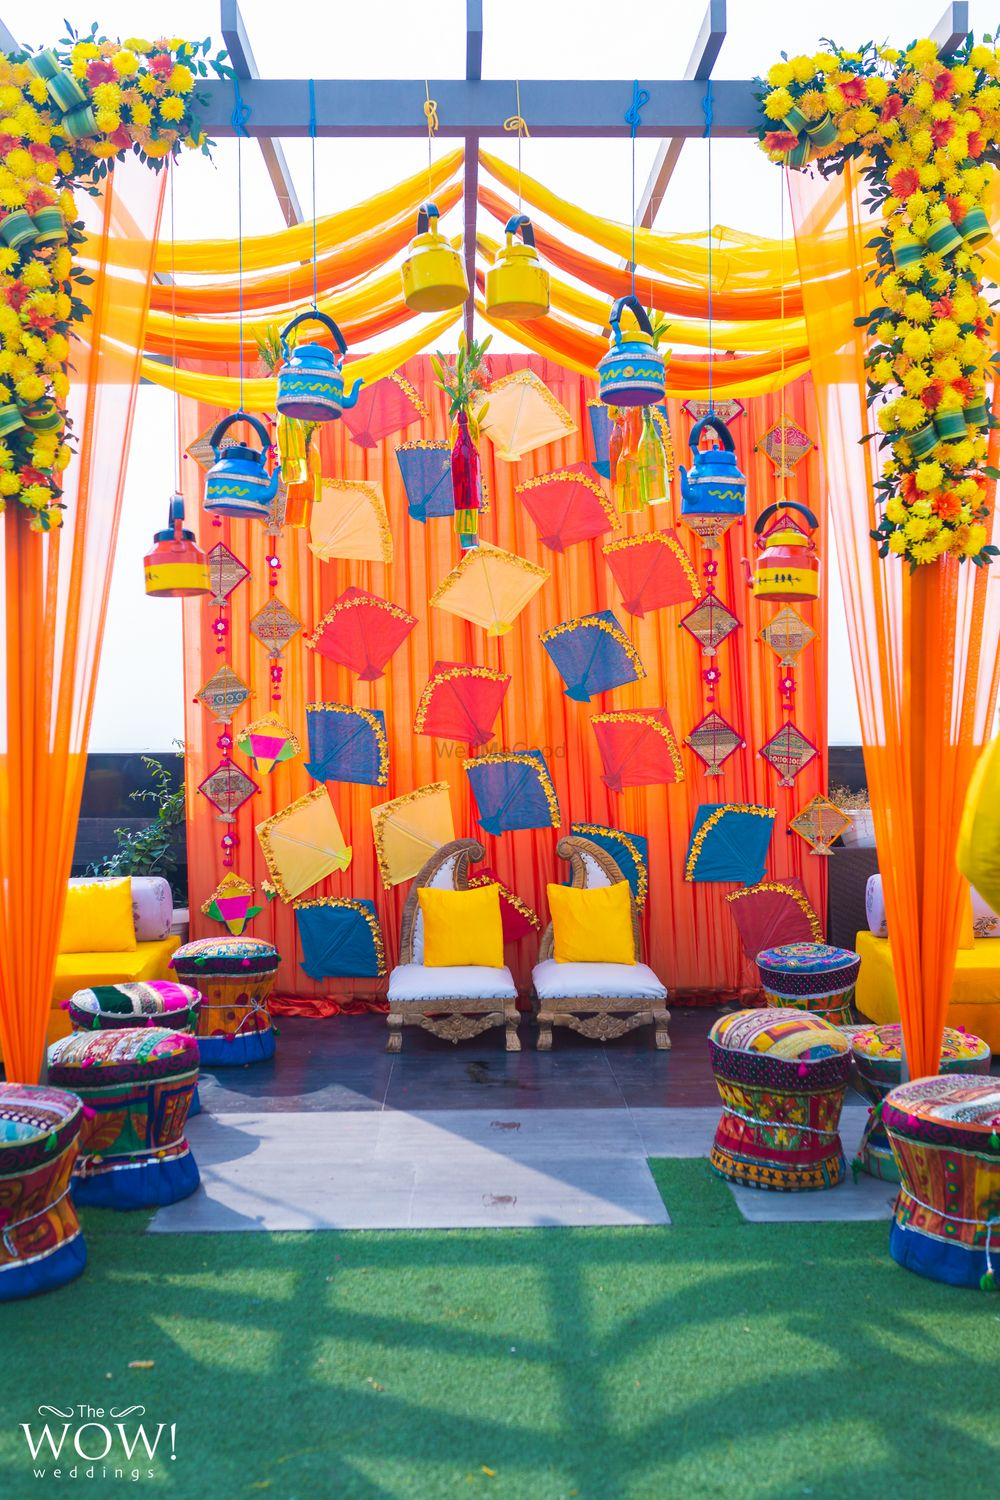 Photo of Colourful mehndi decor idea with kites in photobooth